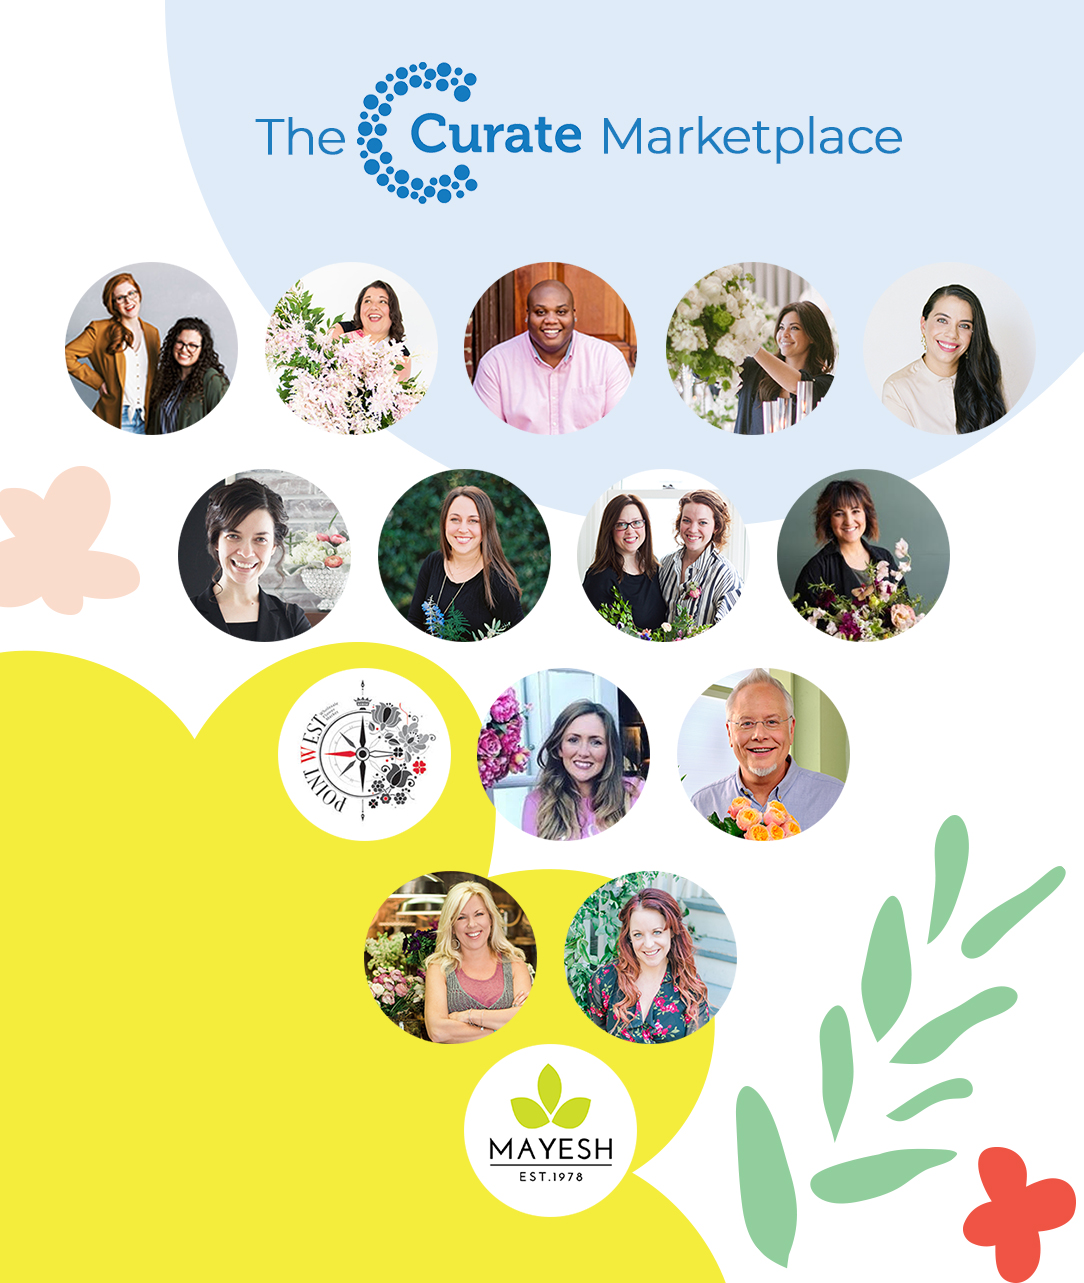 Update Curate Marketplace leaders